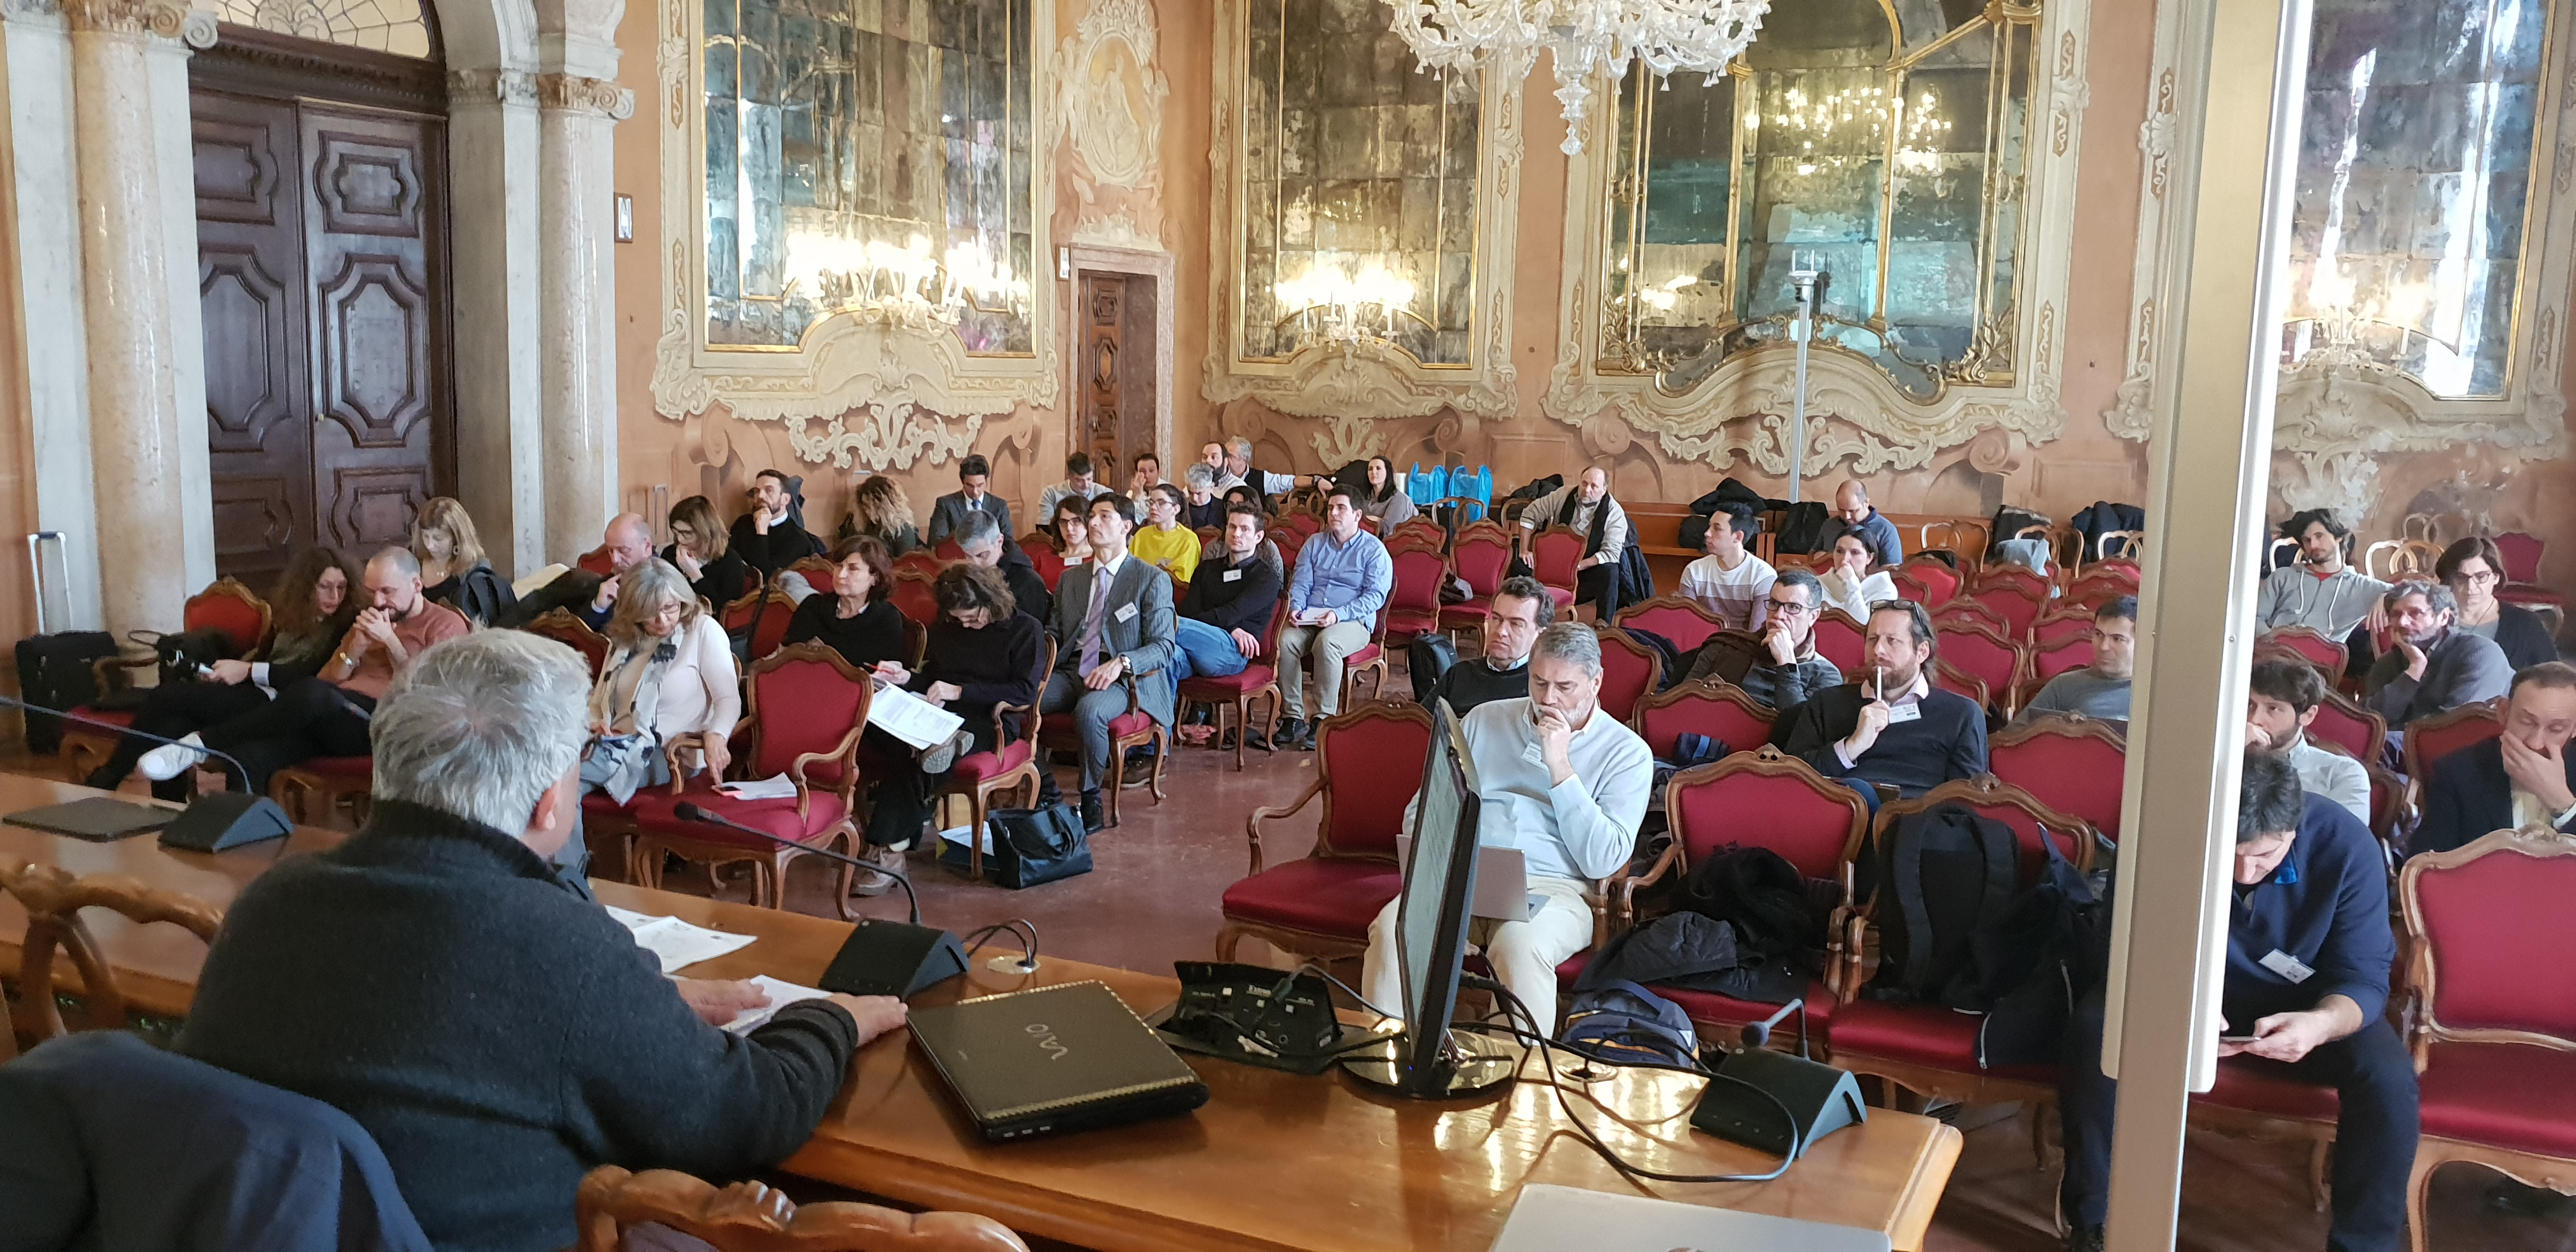 5th meeting day 3 - WP meetings in Venice